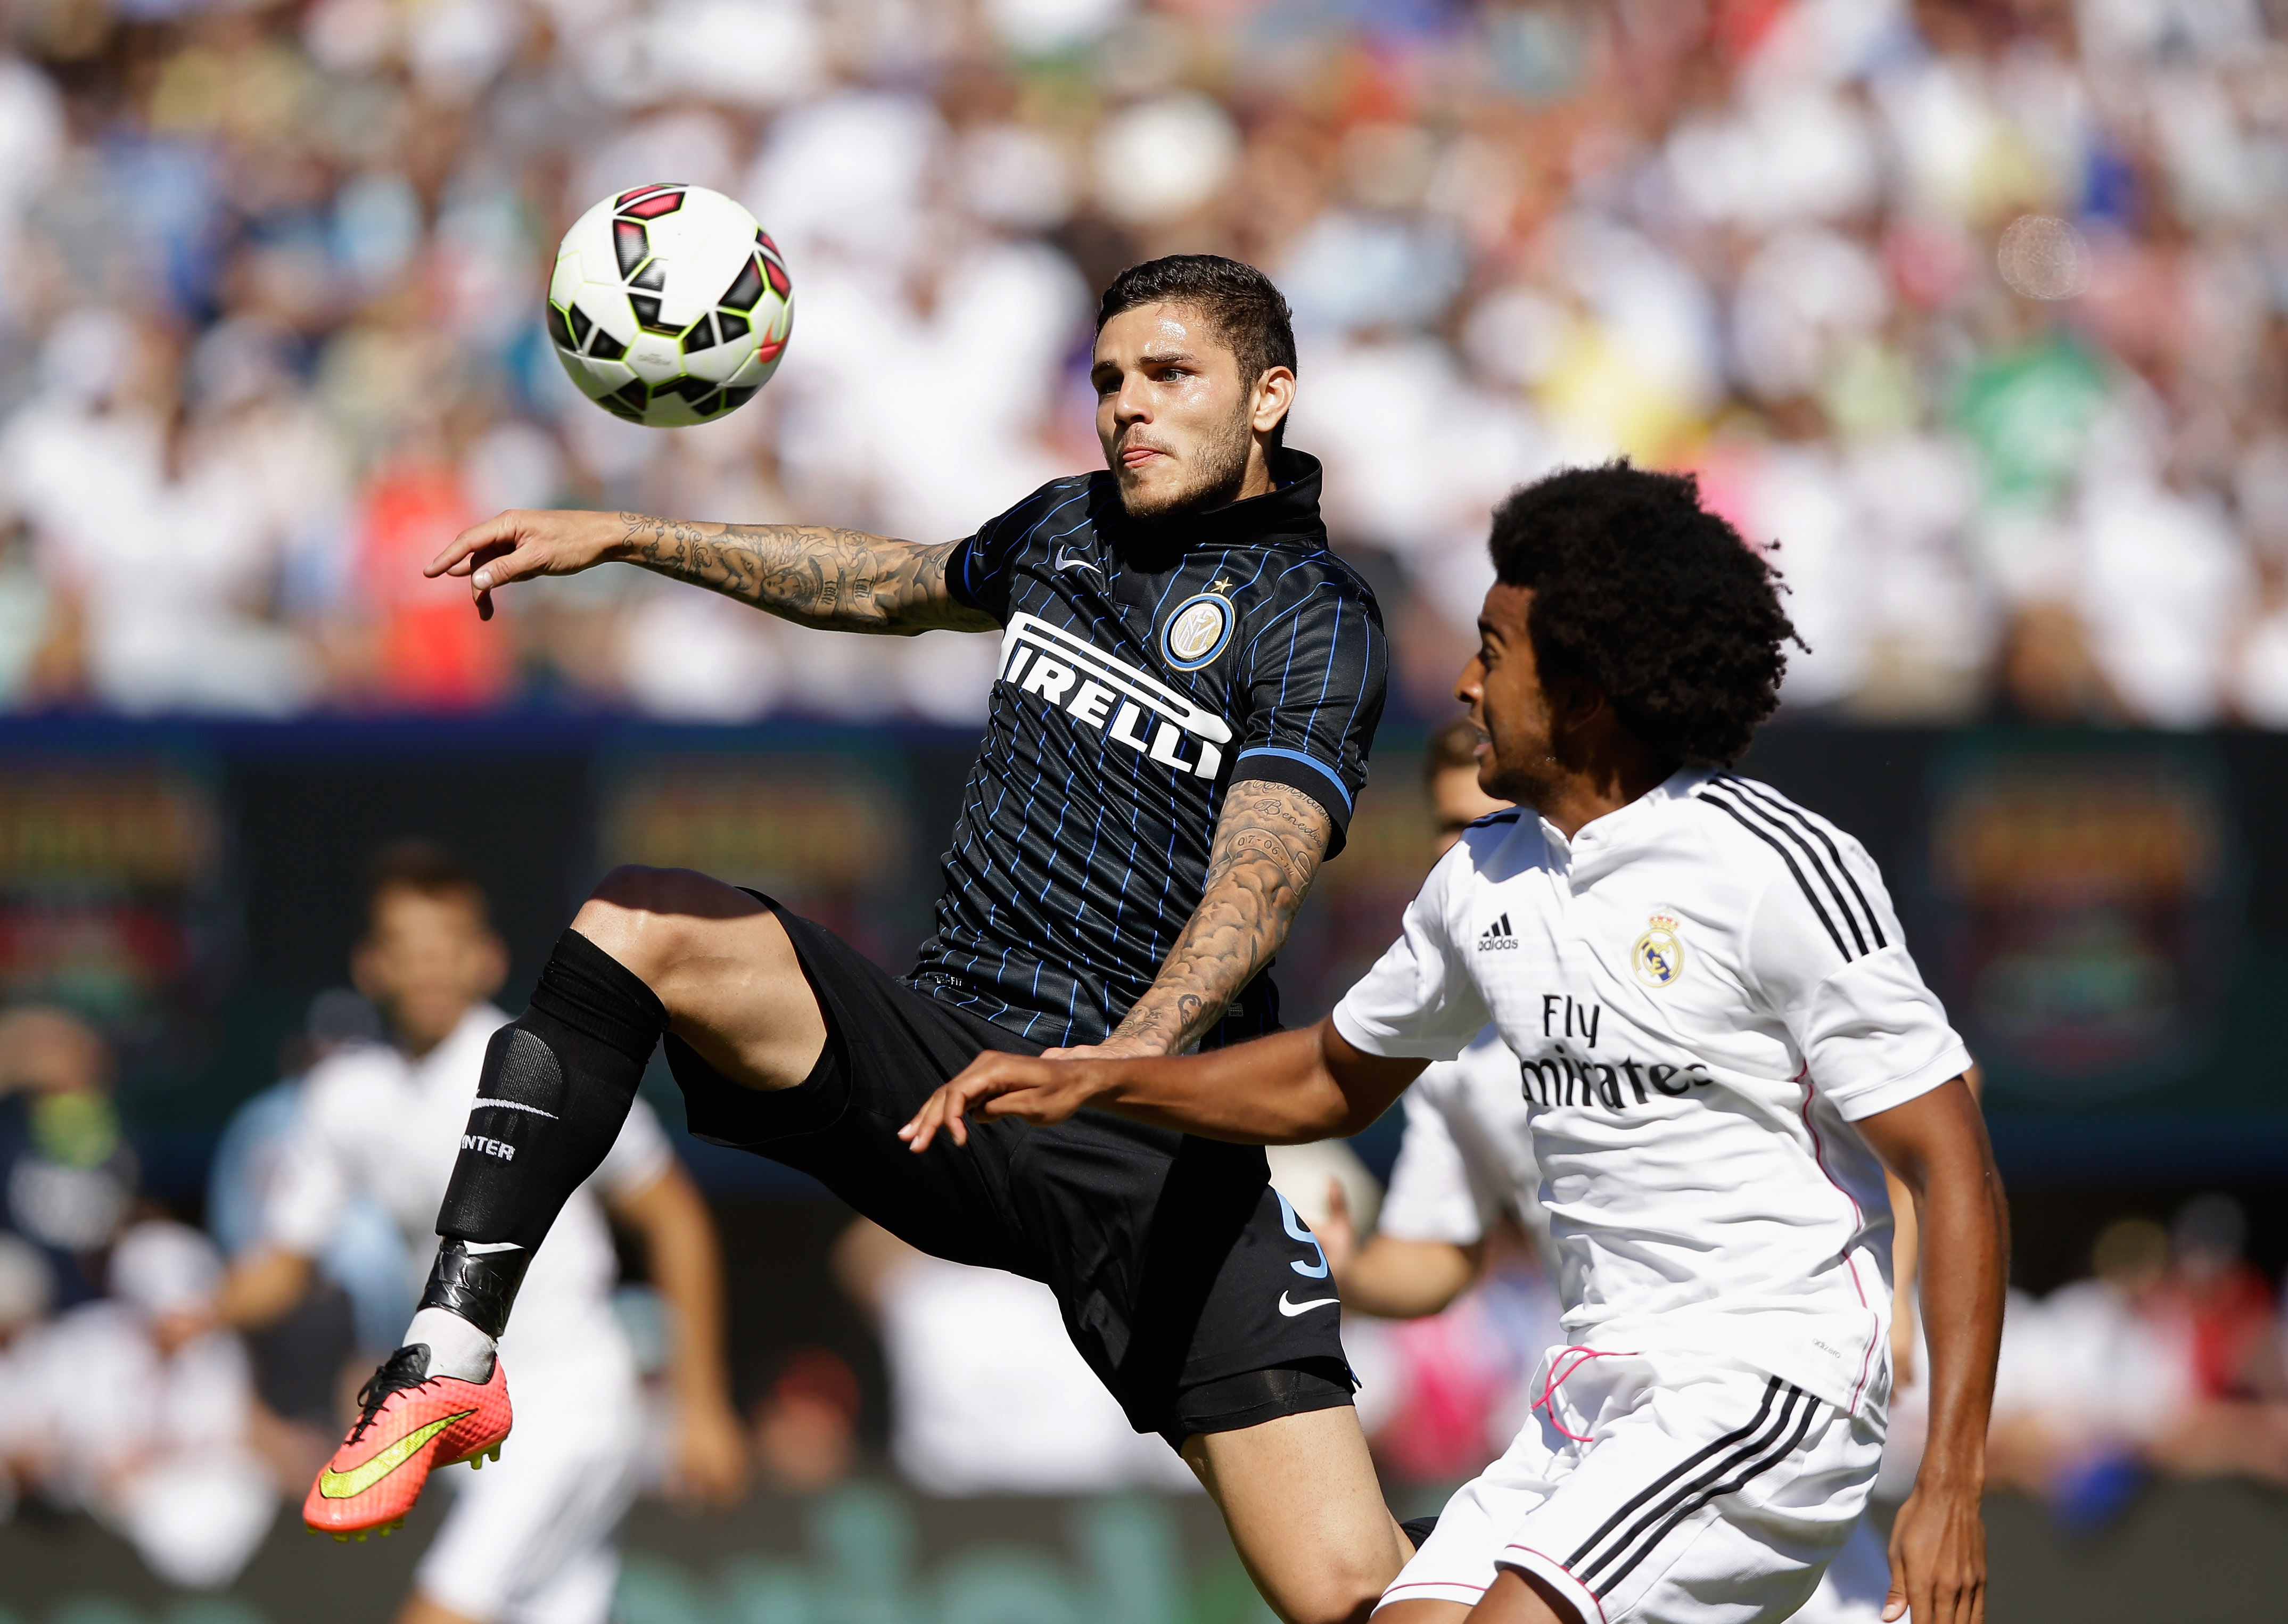 Osede in action against Mauro Icardi.